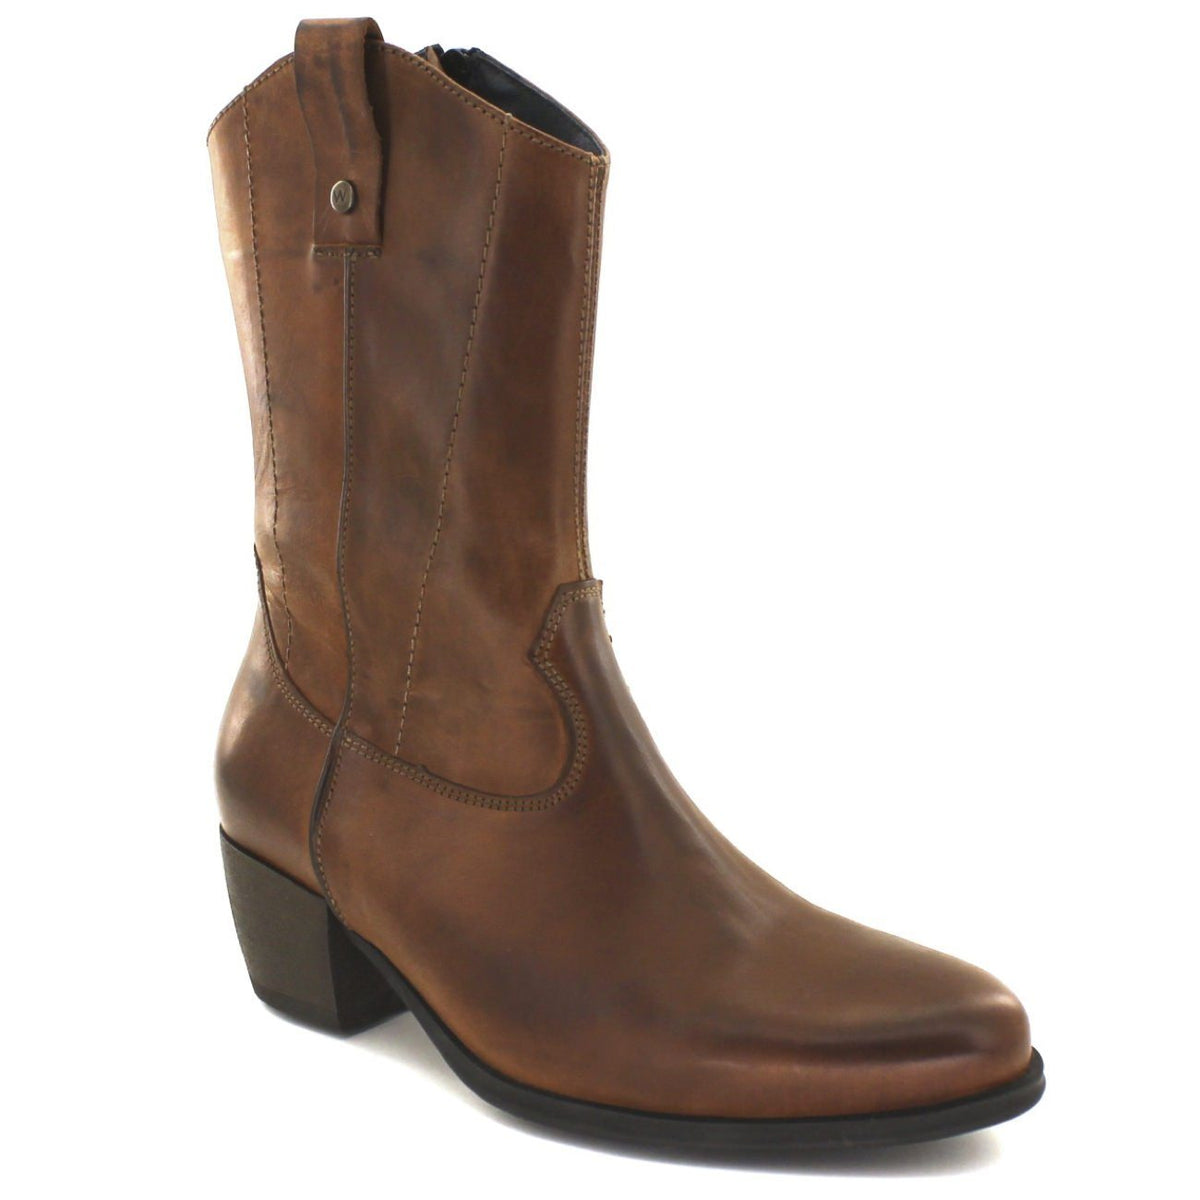 Wolky, Caprock, Boots, Softy Wax Leather, Ladies, Cognac Boots Wolky Cognac 36